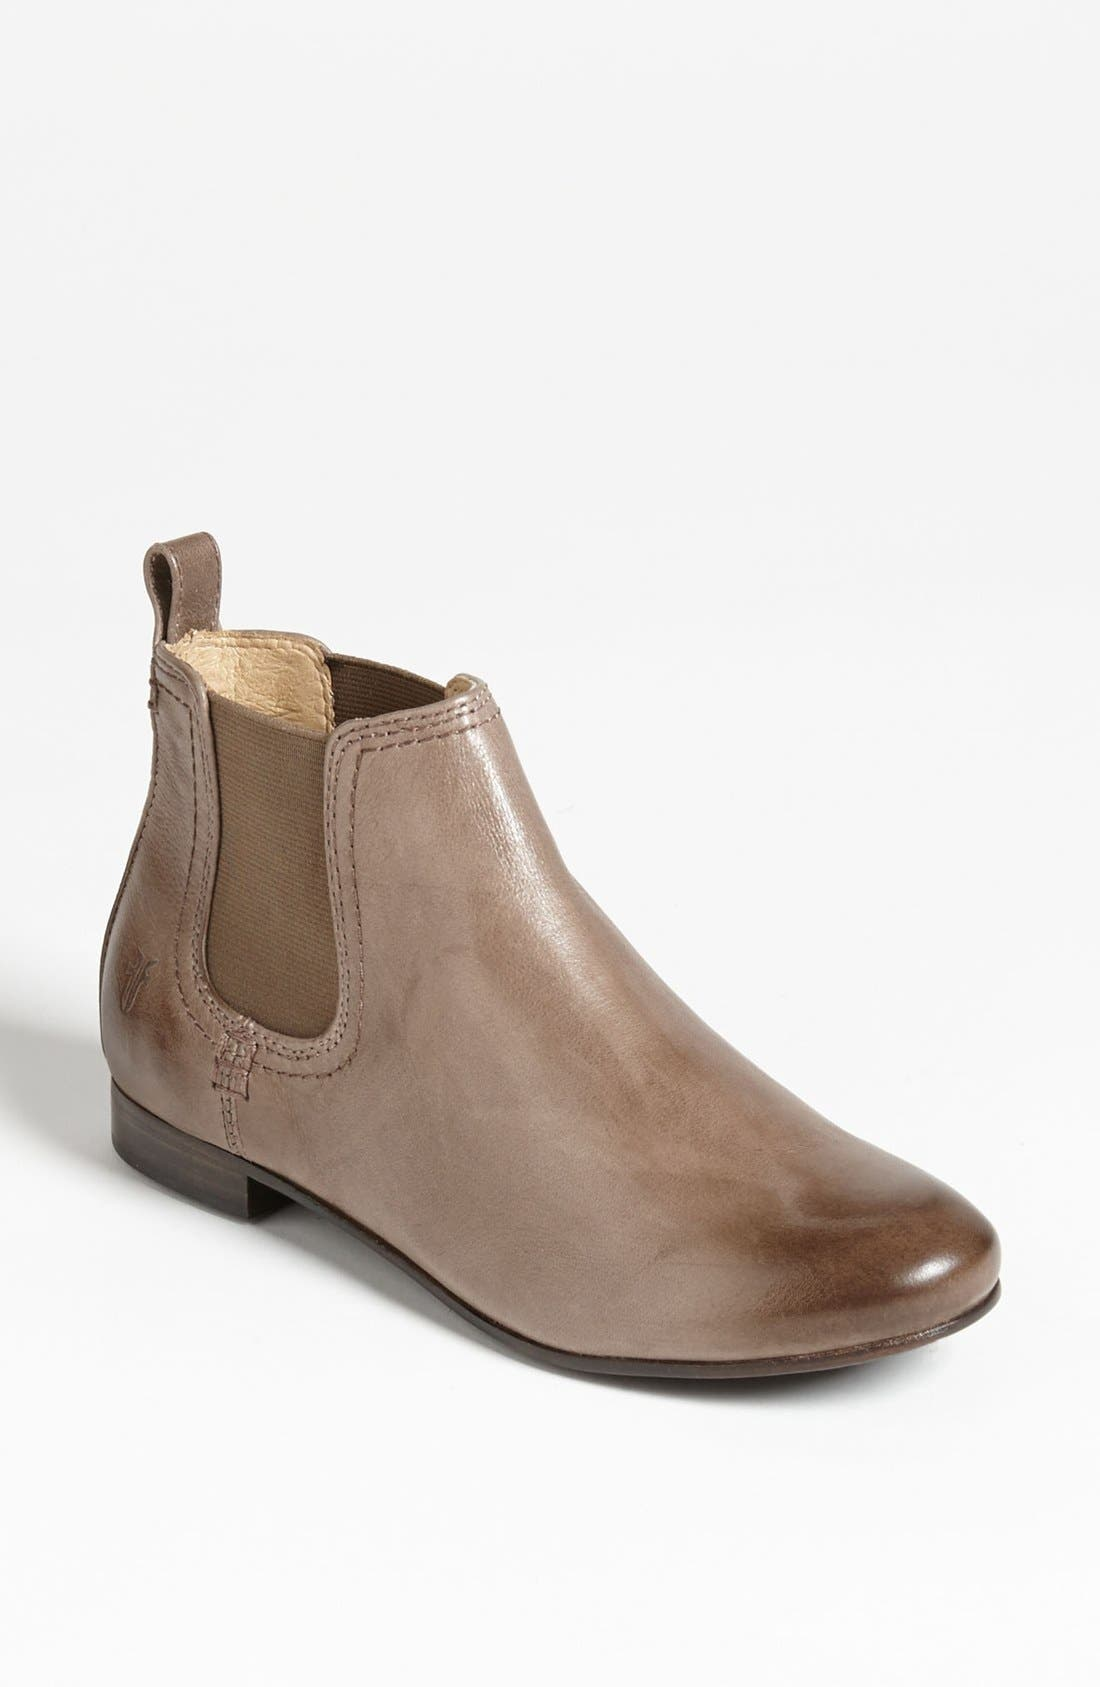 Main Image - Frye 'Jillian' Chelsea Boot